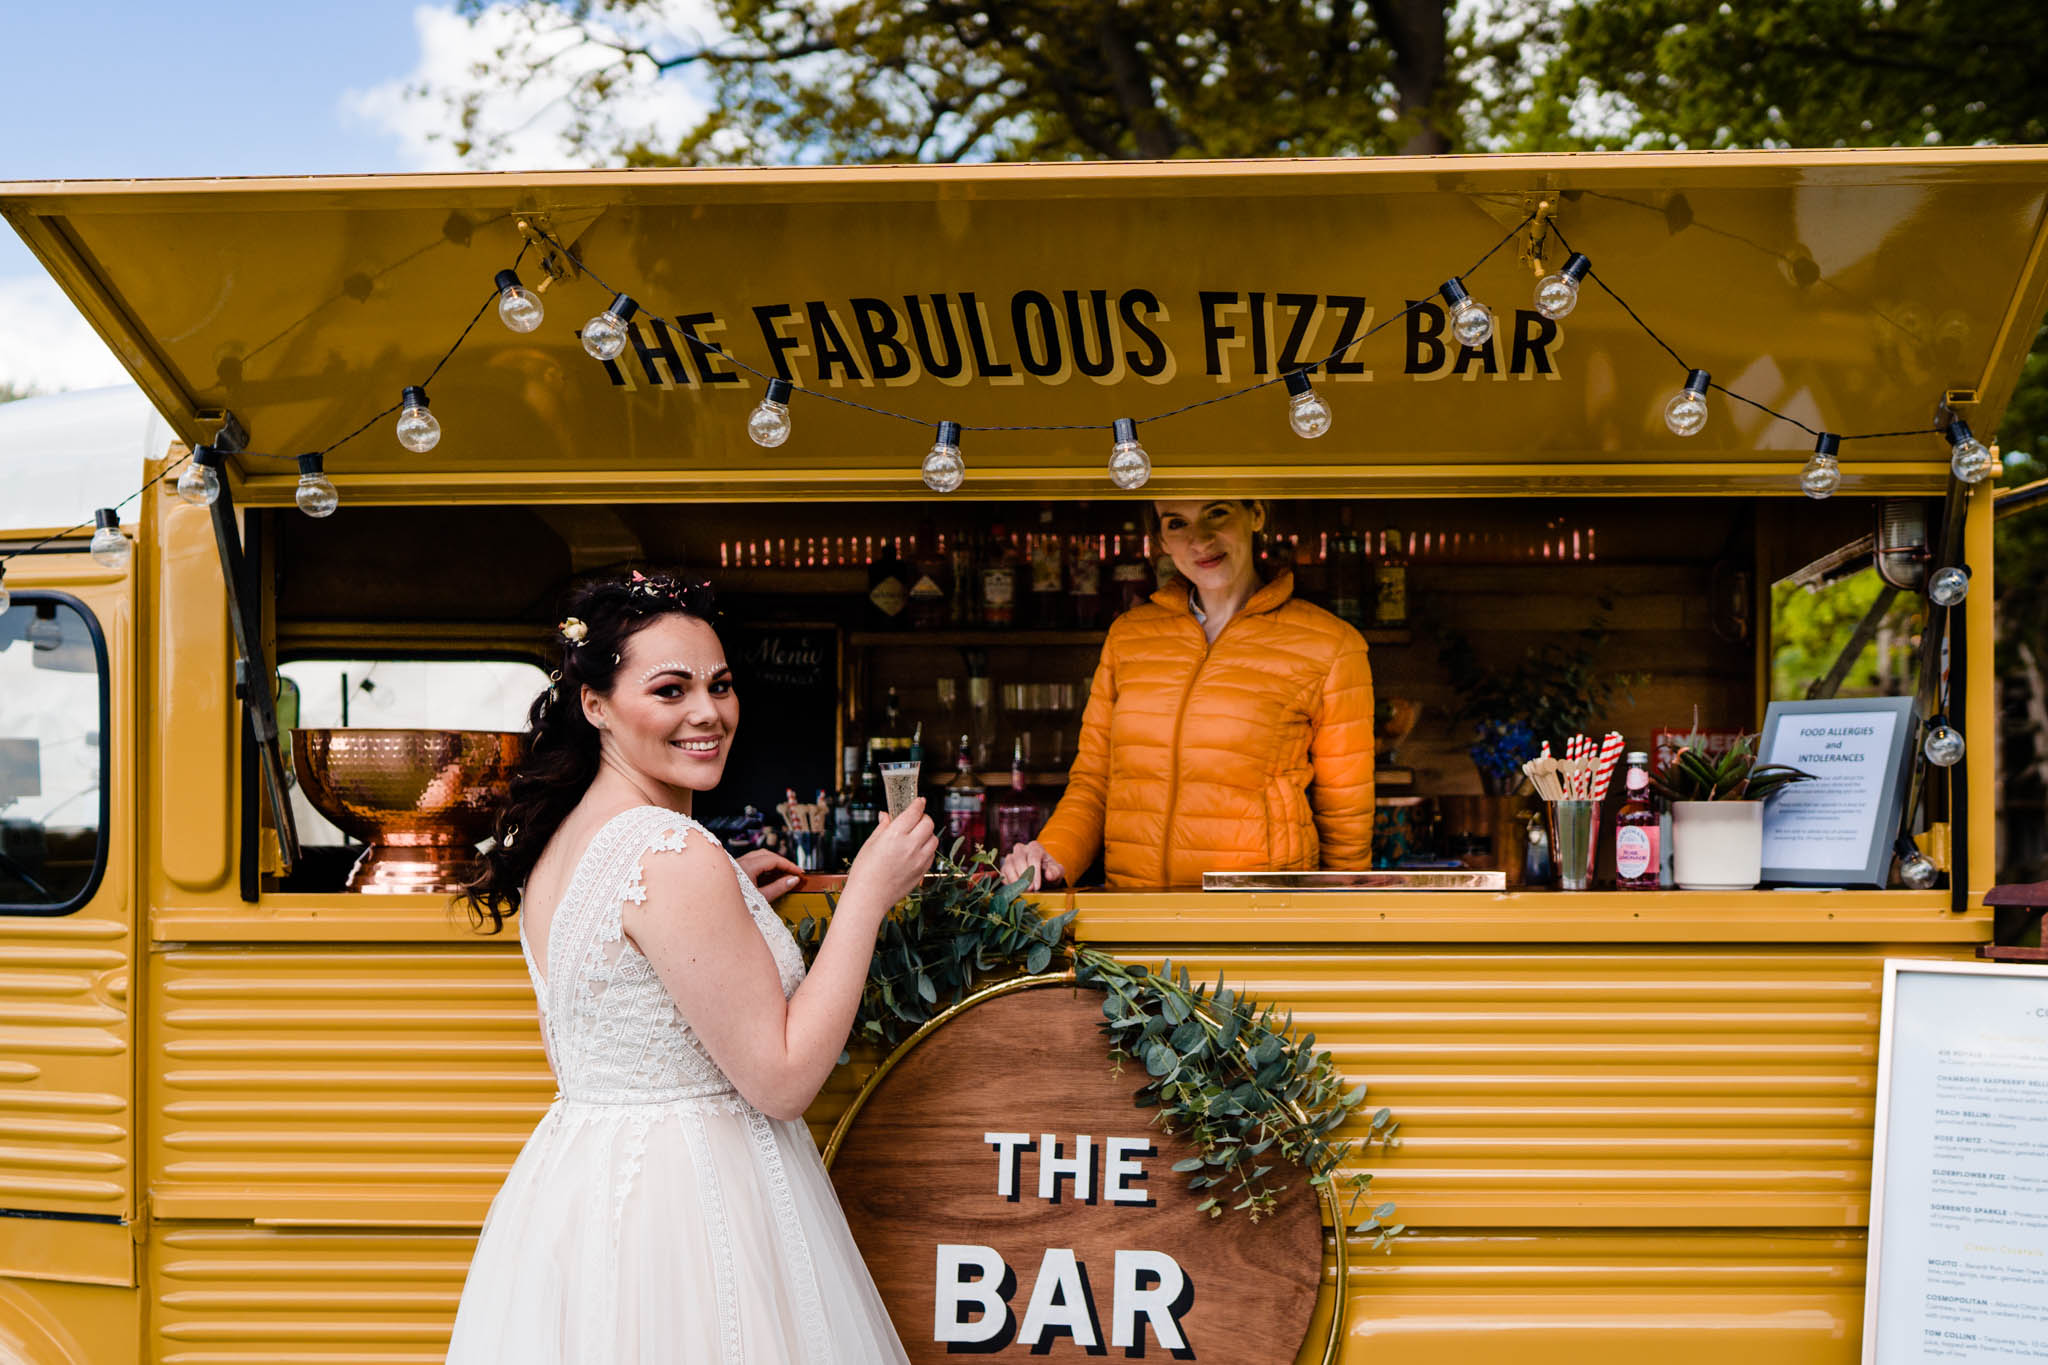 Festival wedding - Unconventional Wedding Festival - Fabulous Fizz Bar - Drink vans - vicki clayson photography 2